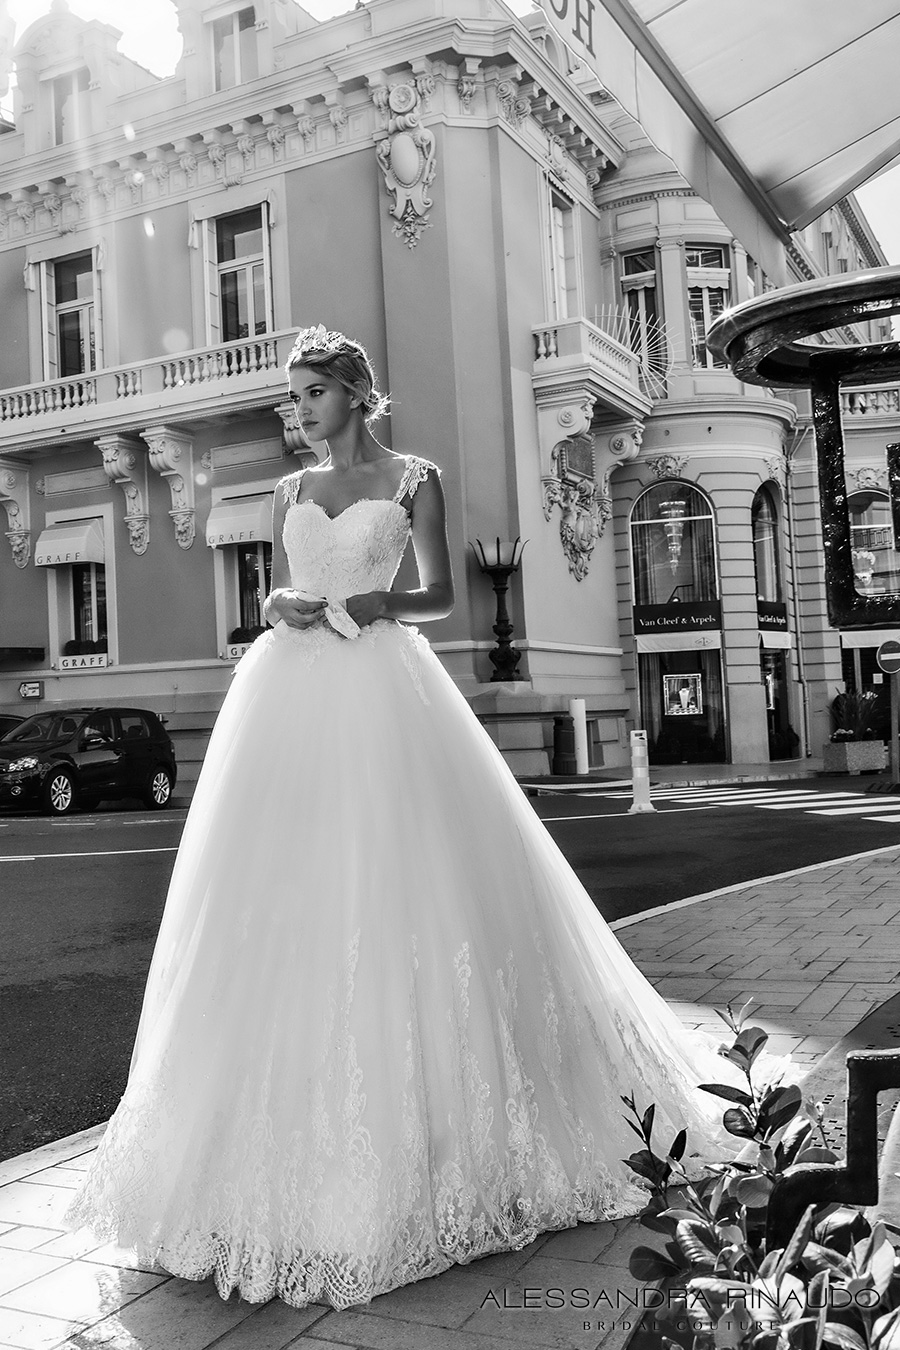 alessandra rinaudo 2017 bridal cap sleeves lace strap sweetheart neckline heavily embellished bodice princess ball gown wedding dress lace back royal long train (bonny) mv